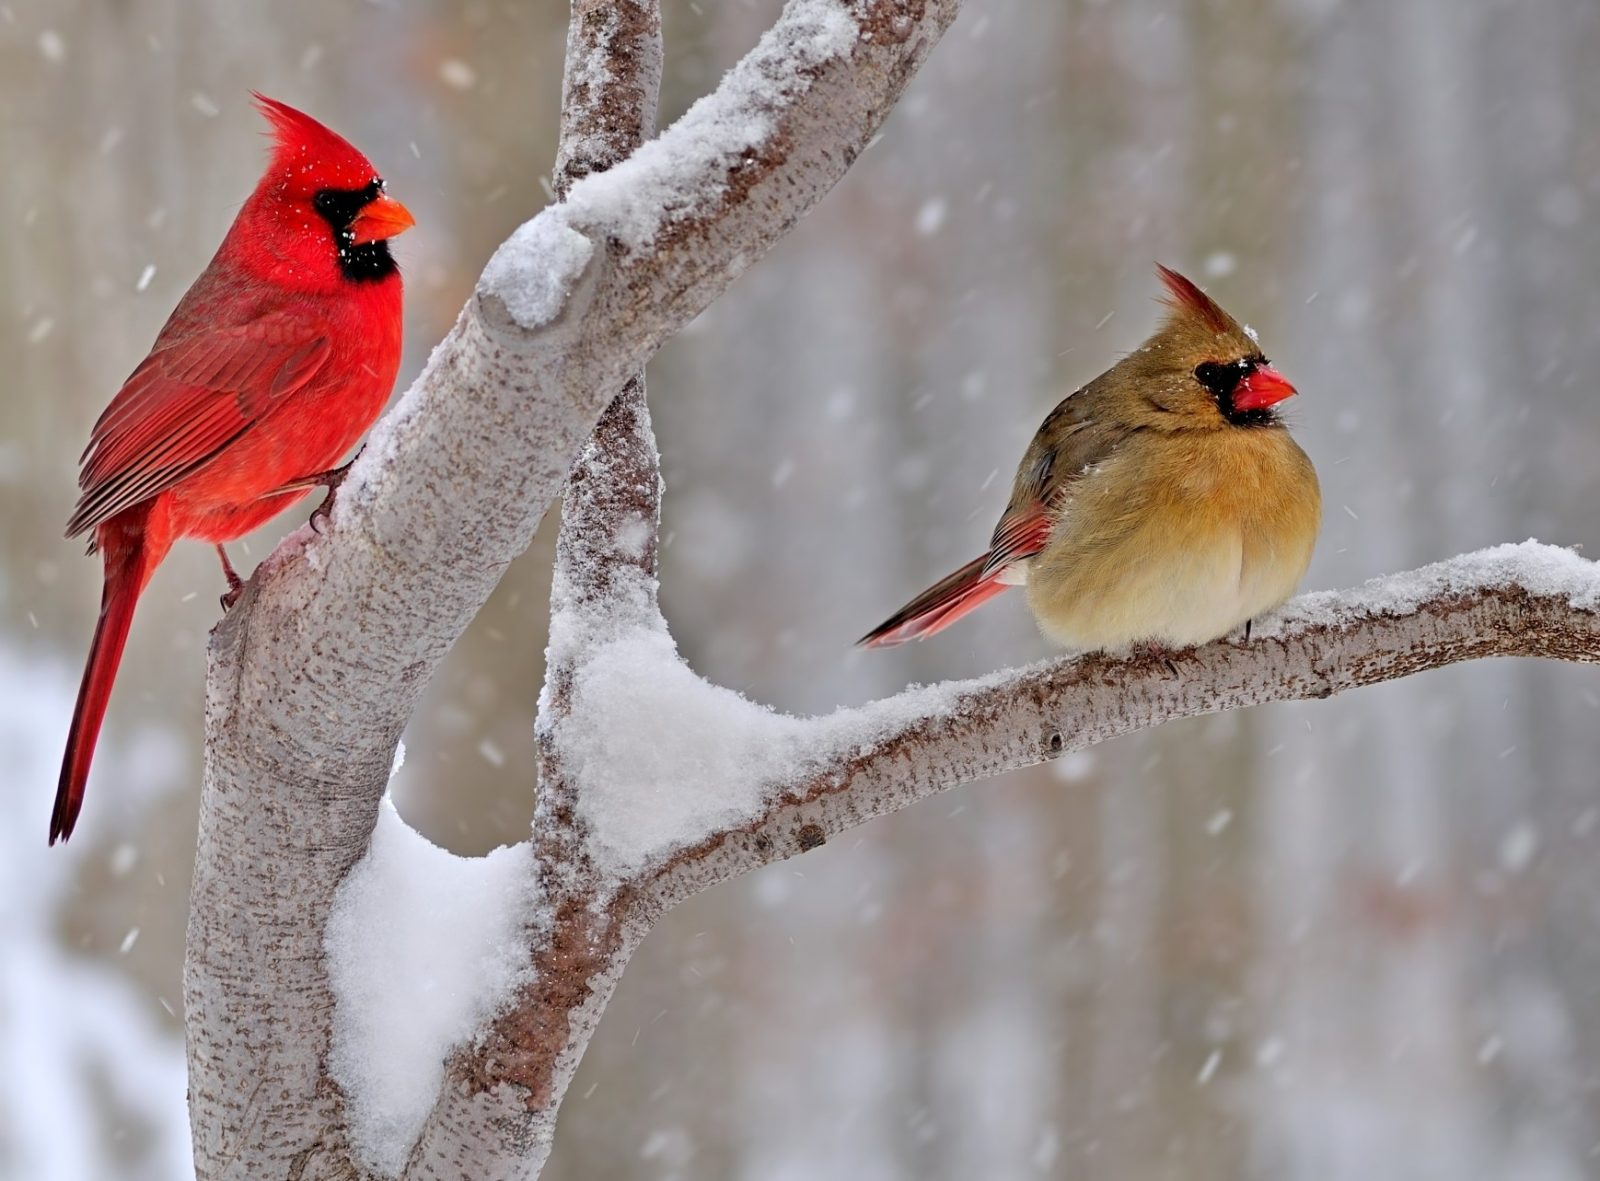 Attracting & Photographing Songbirds